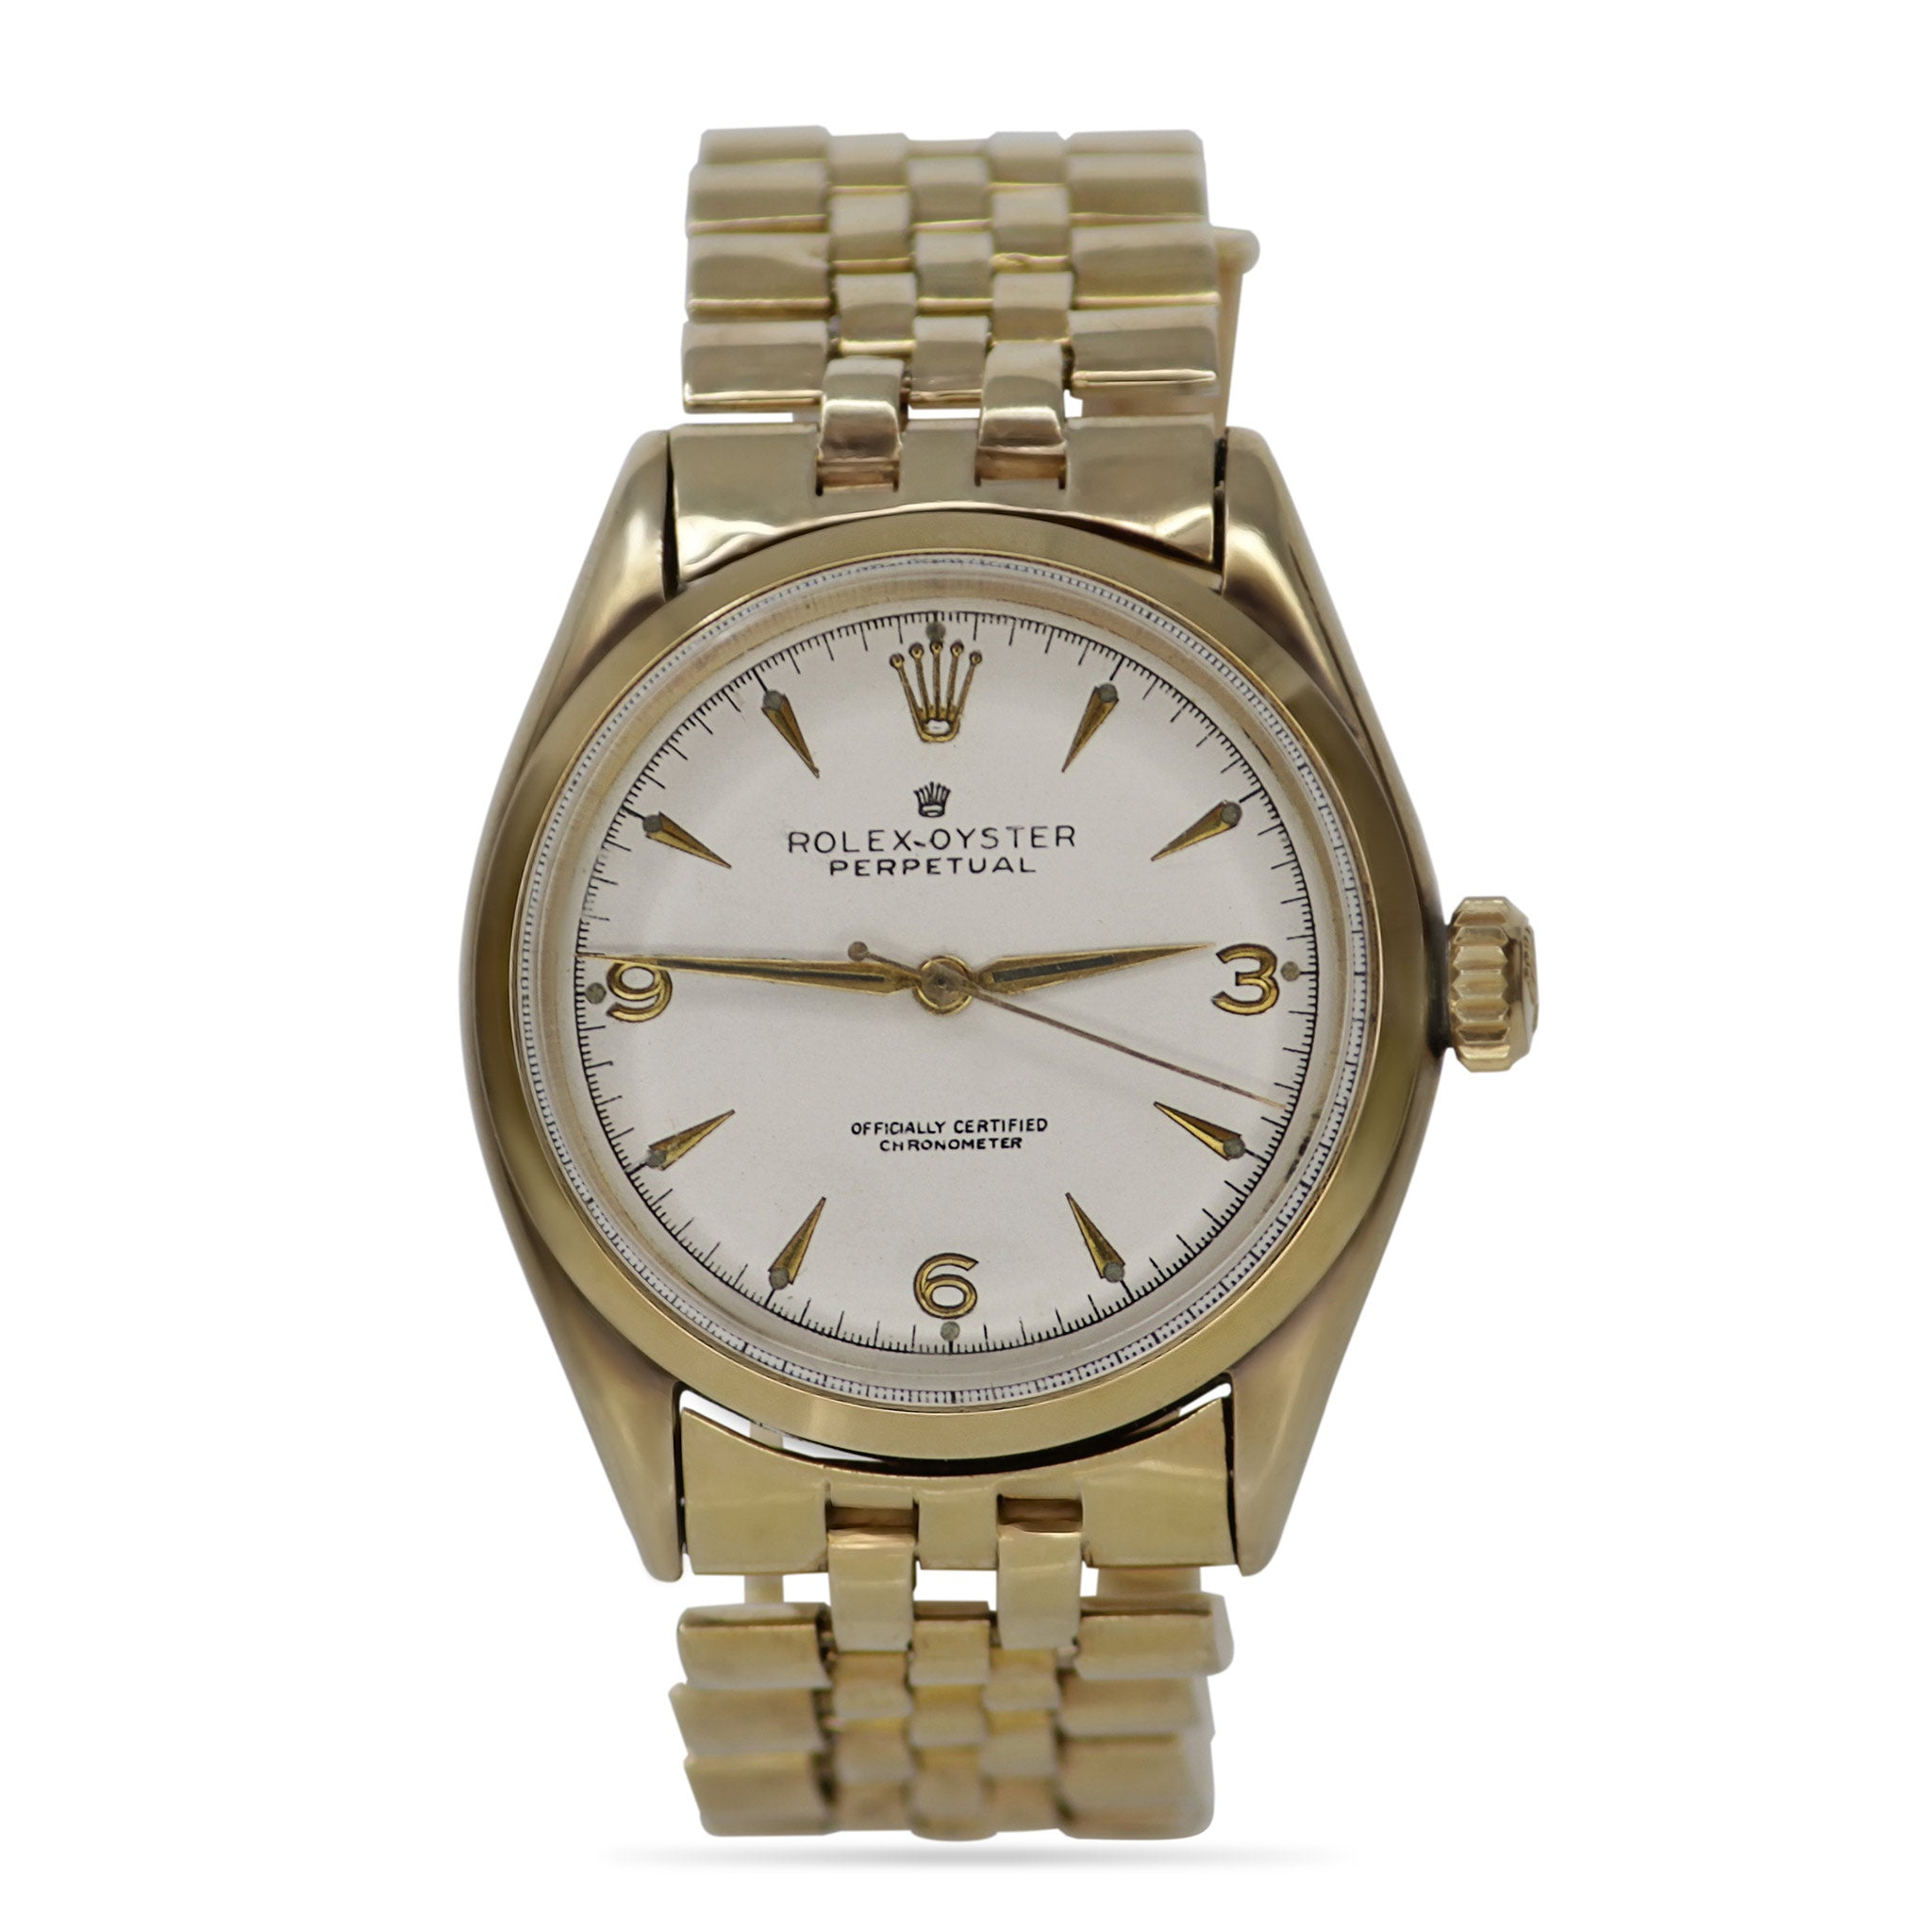 Rolex -Perpetual Vintage Watch Jubilee Band 36mm 18k Yellow Gold